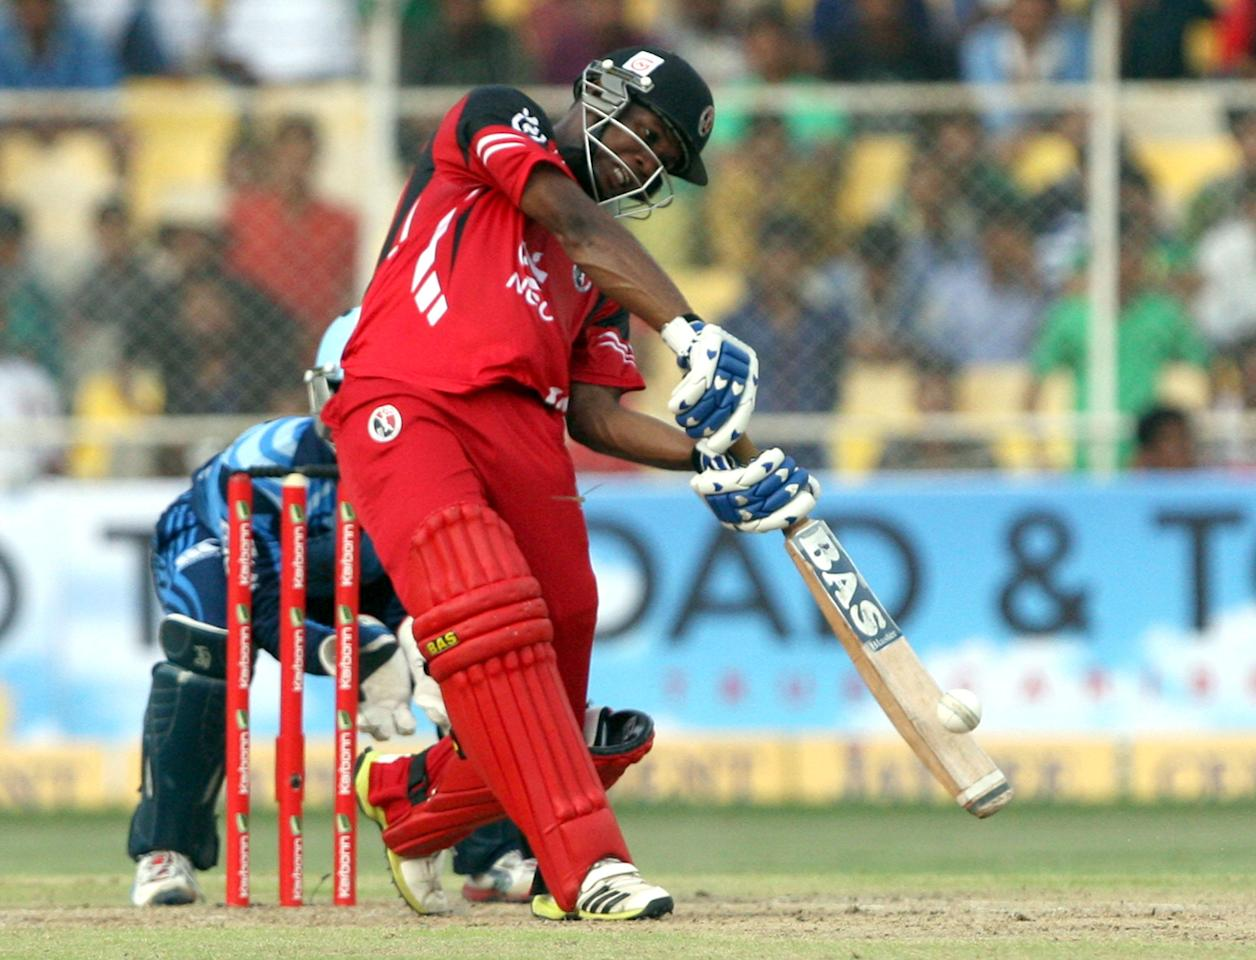 E Lewis in action during the CLT20 match between Titans and Trinidad & Tobago at Sardar Patel Stadium, Motera in Ahmedabad on Sept. 30, 2013. (Photo: IANS)